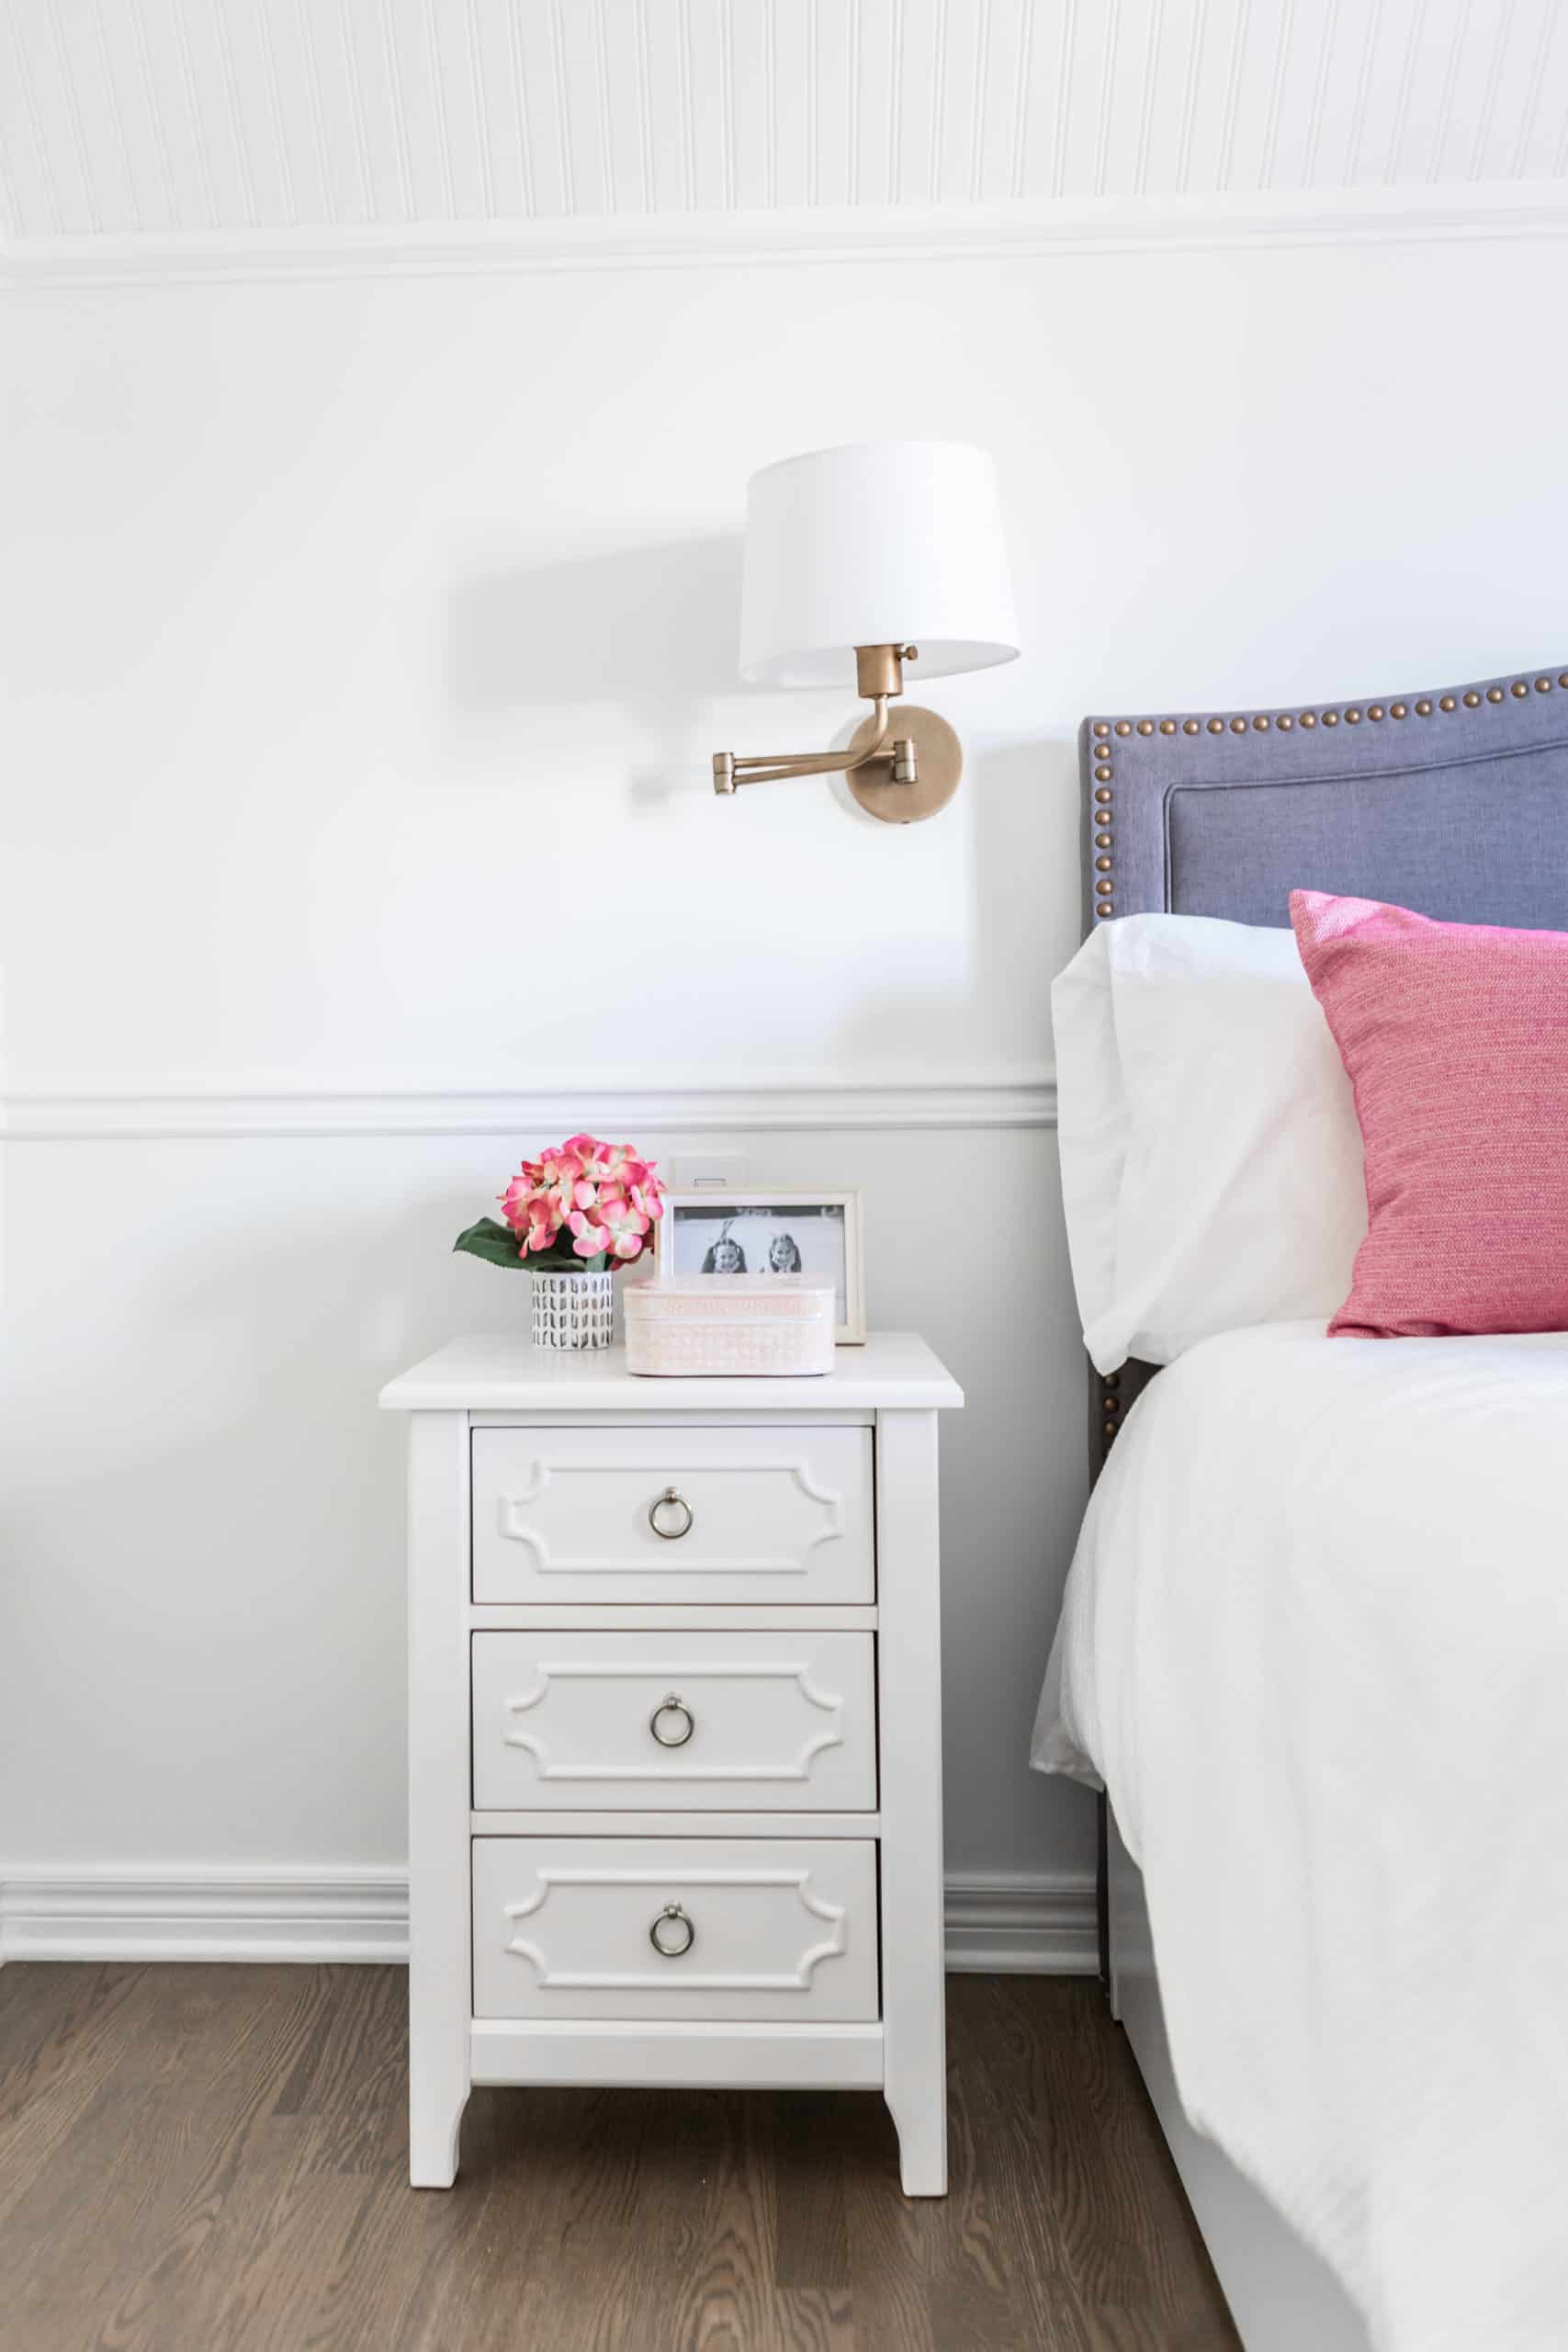 White, thin bedside table with flowers on it